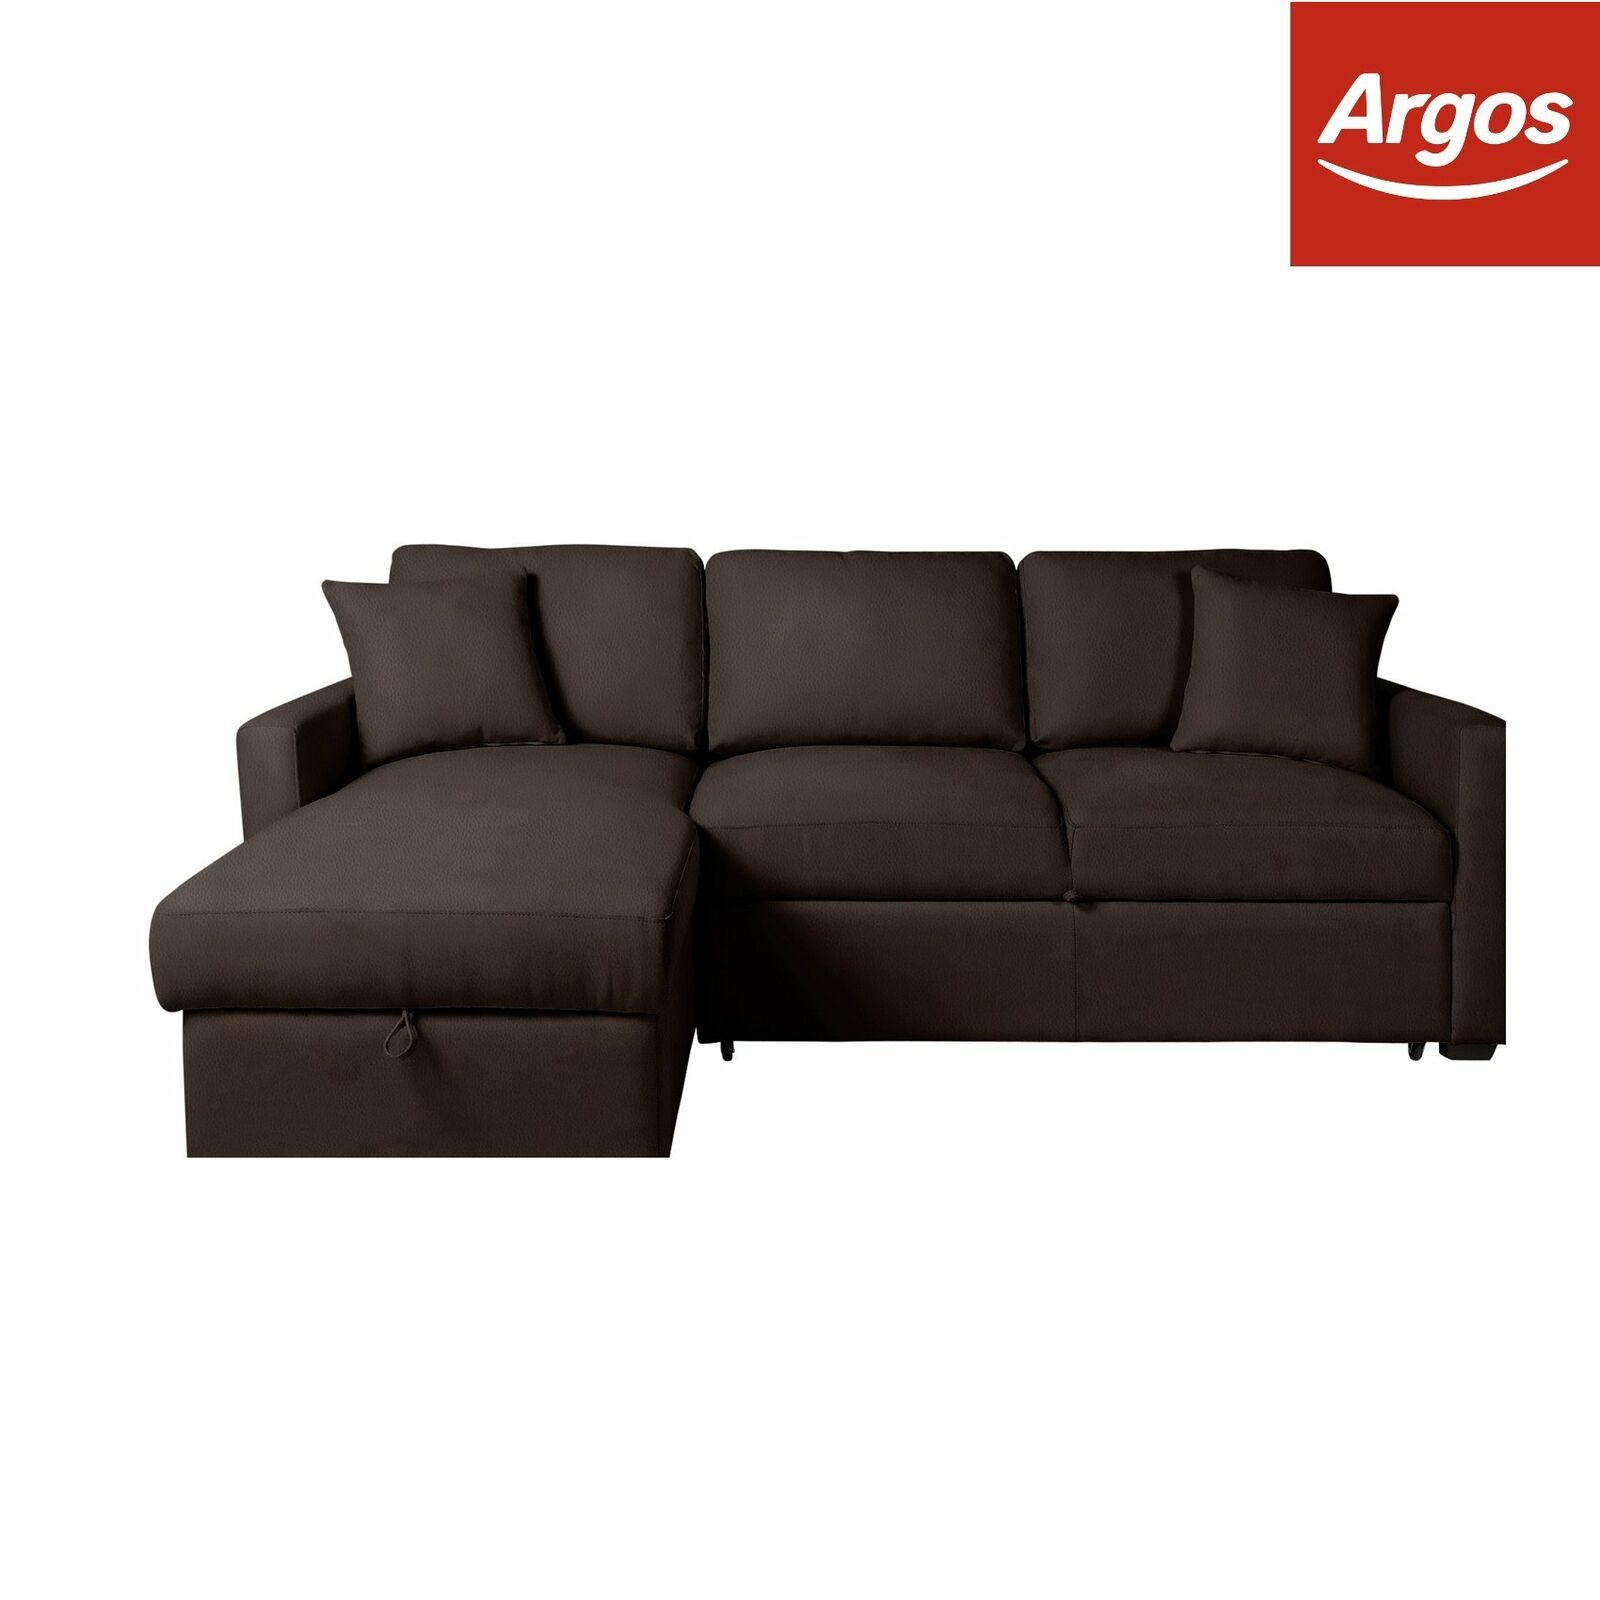 Argos Corner Sofa Sofa Bed With Storage Corner Sofa Corner Sofa Bed With Storage